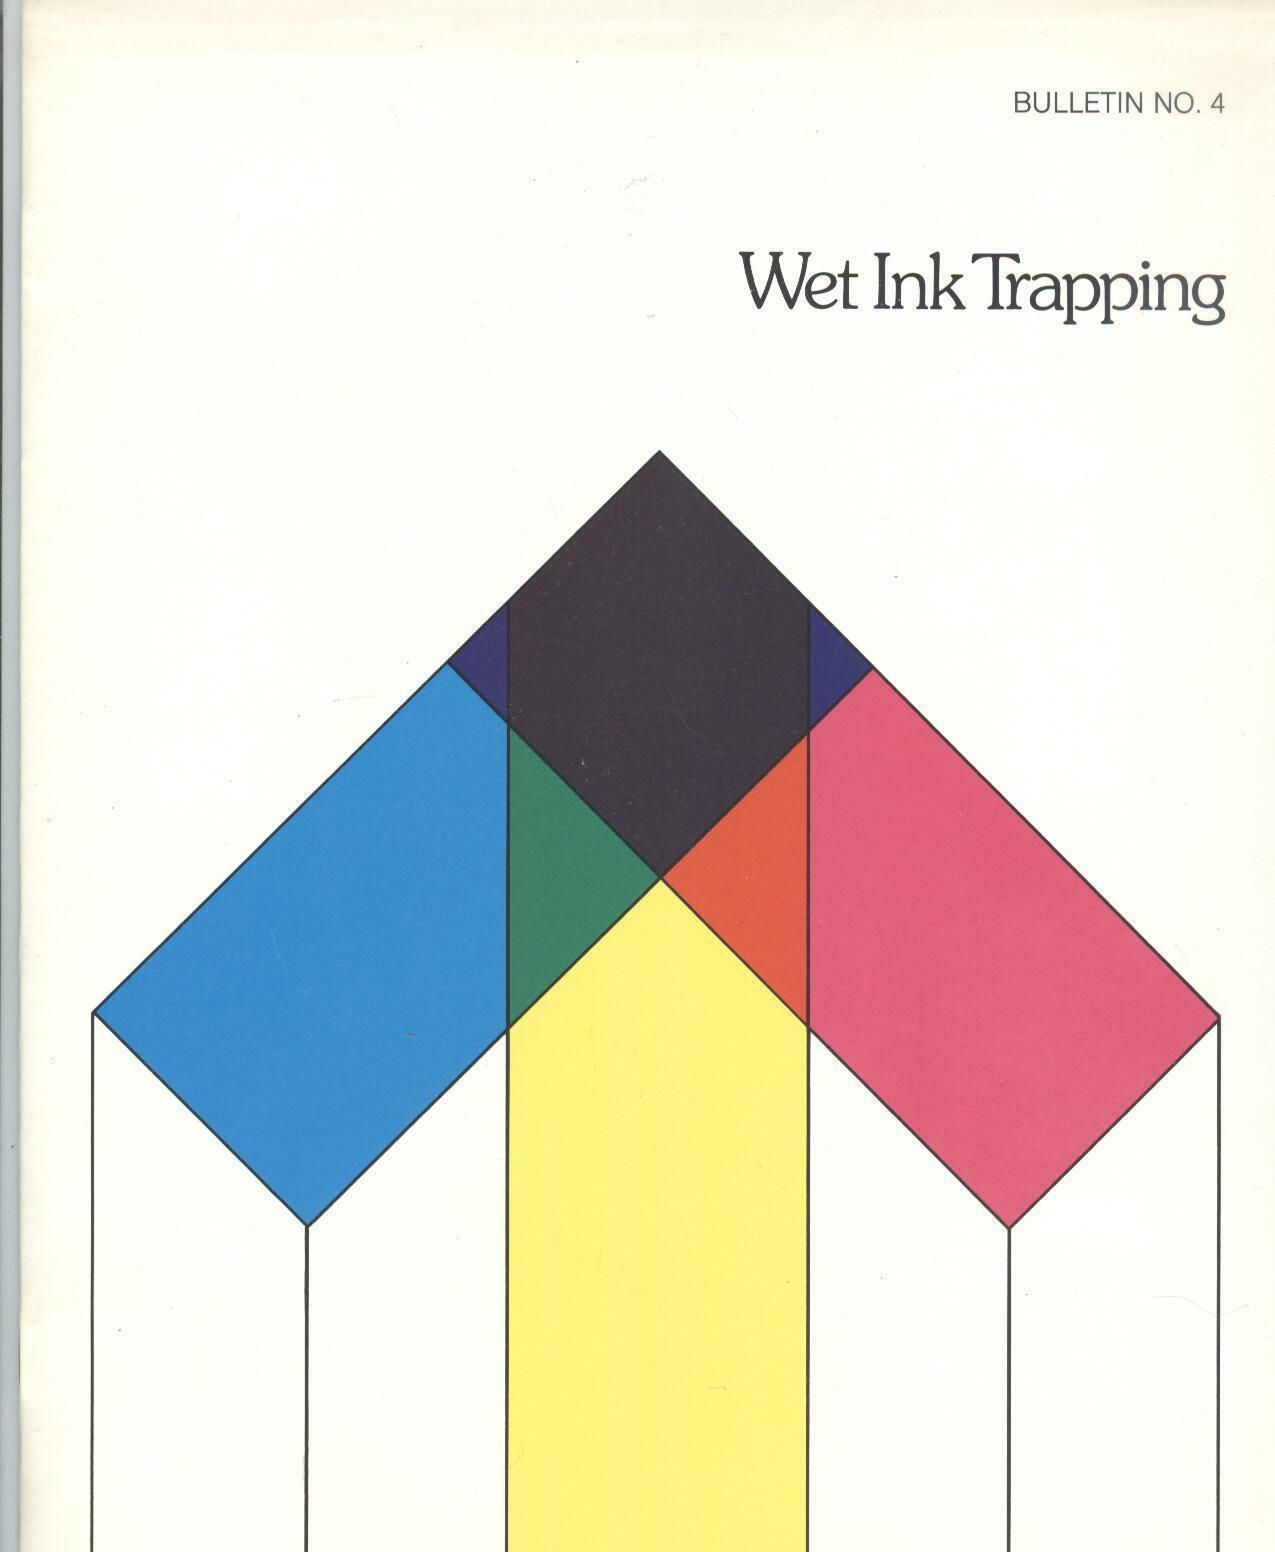 1980 Warren Printing Paper Company Book On Wet Ink Trapping Offset Diagram Press Print Commercial And Design Layouts